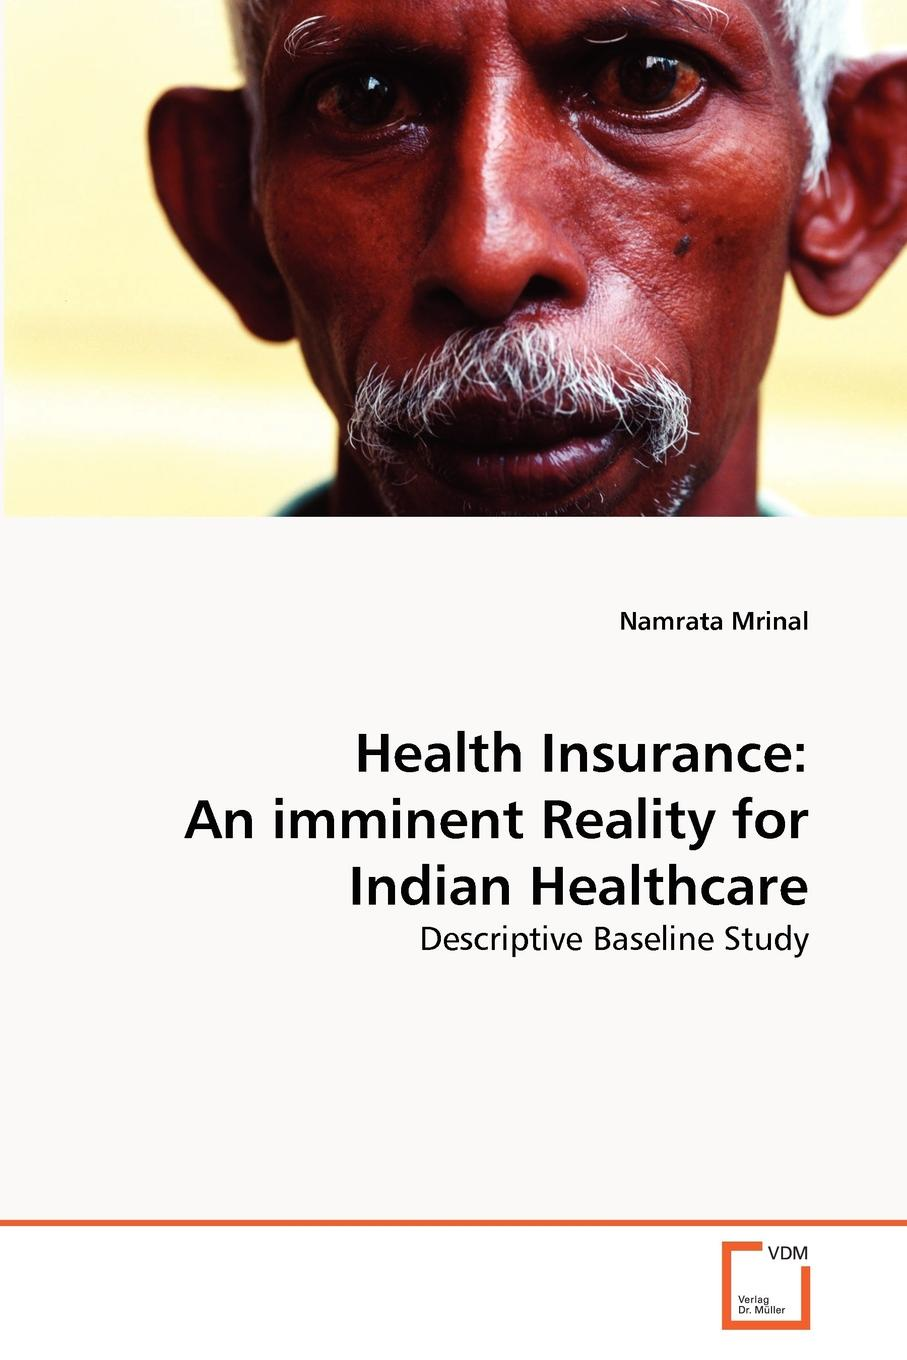 Namrata Mrinal Health Insurance. An imminent Reality for Indian Healthcare voluntary organization in chittoor district